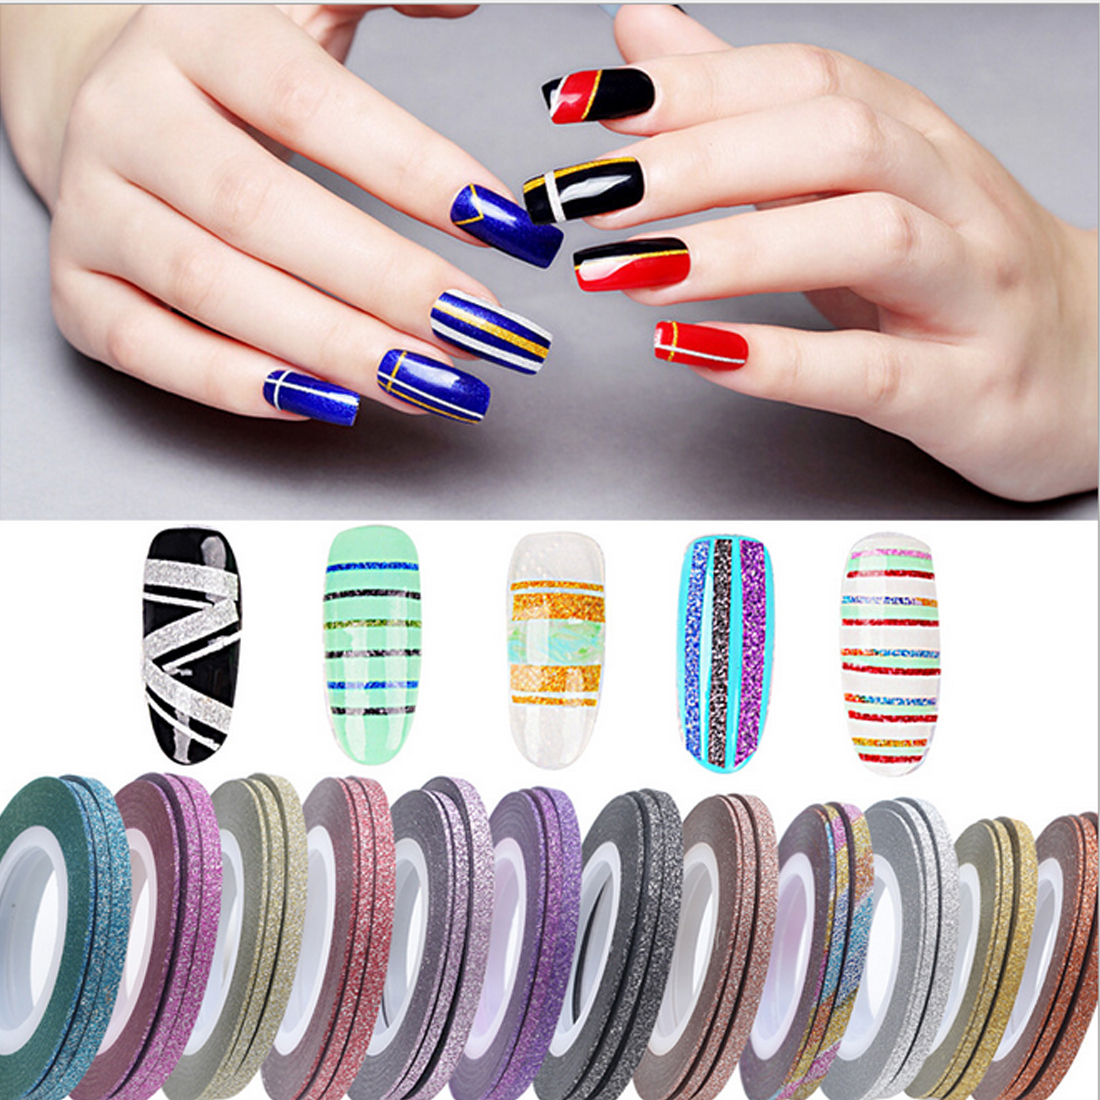 Hot 1 Rolls 3mm Glitter Nail Art Tape Line Strips Striping Decoration For Uv Gel Polish Adhesive Sticker